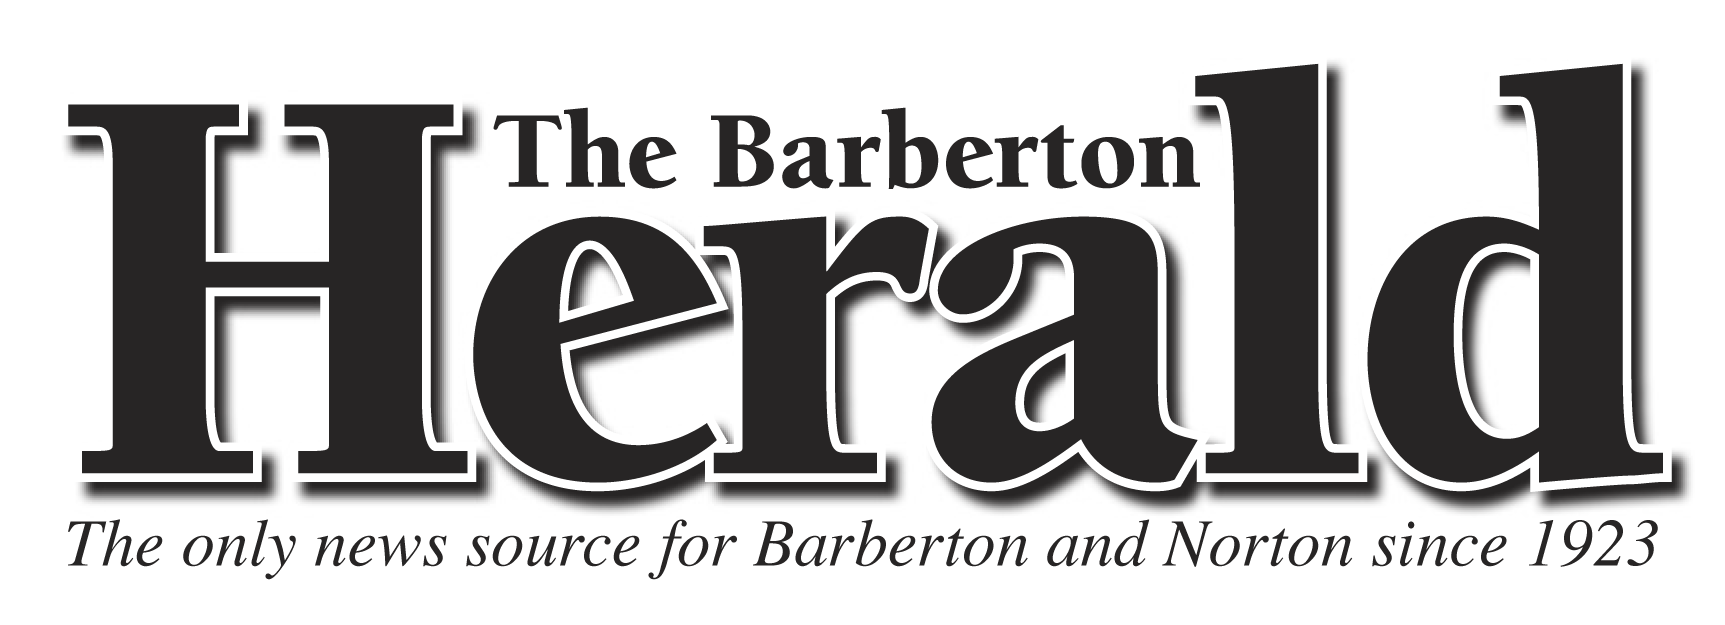 Barberton Herald